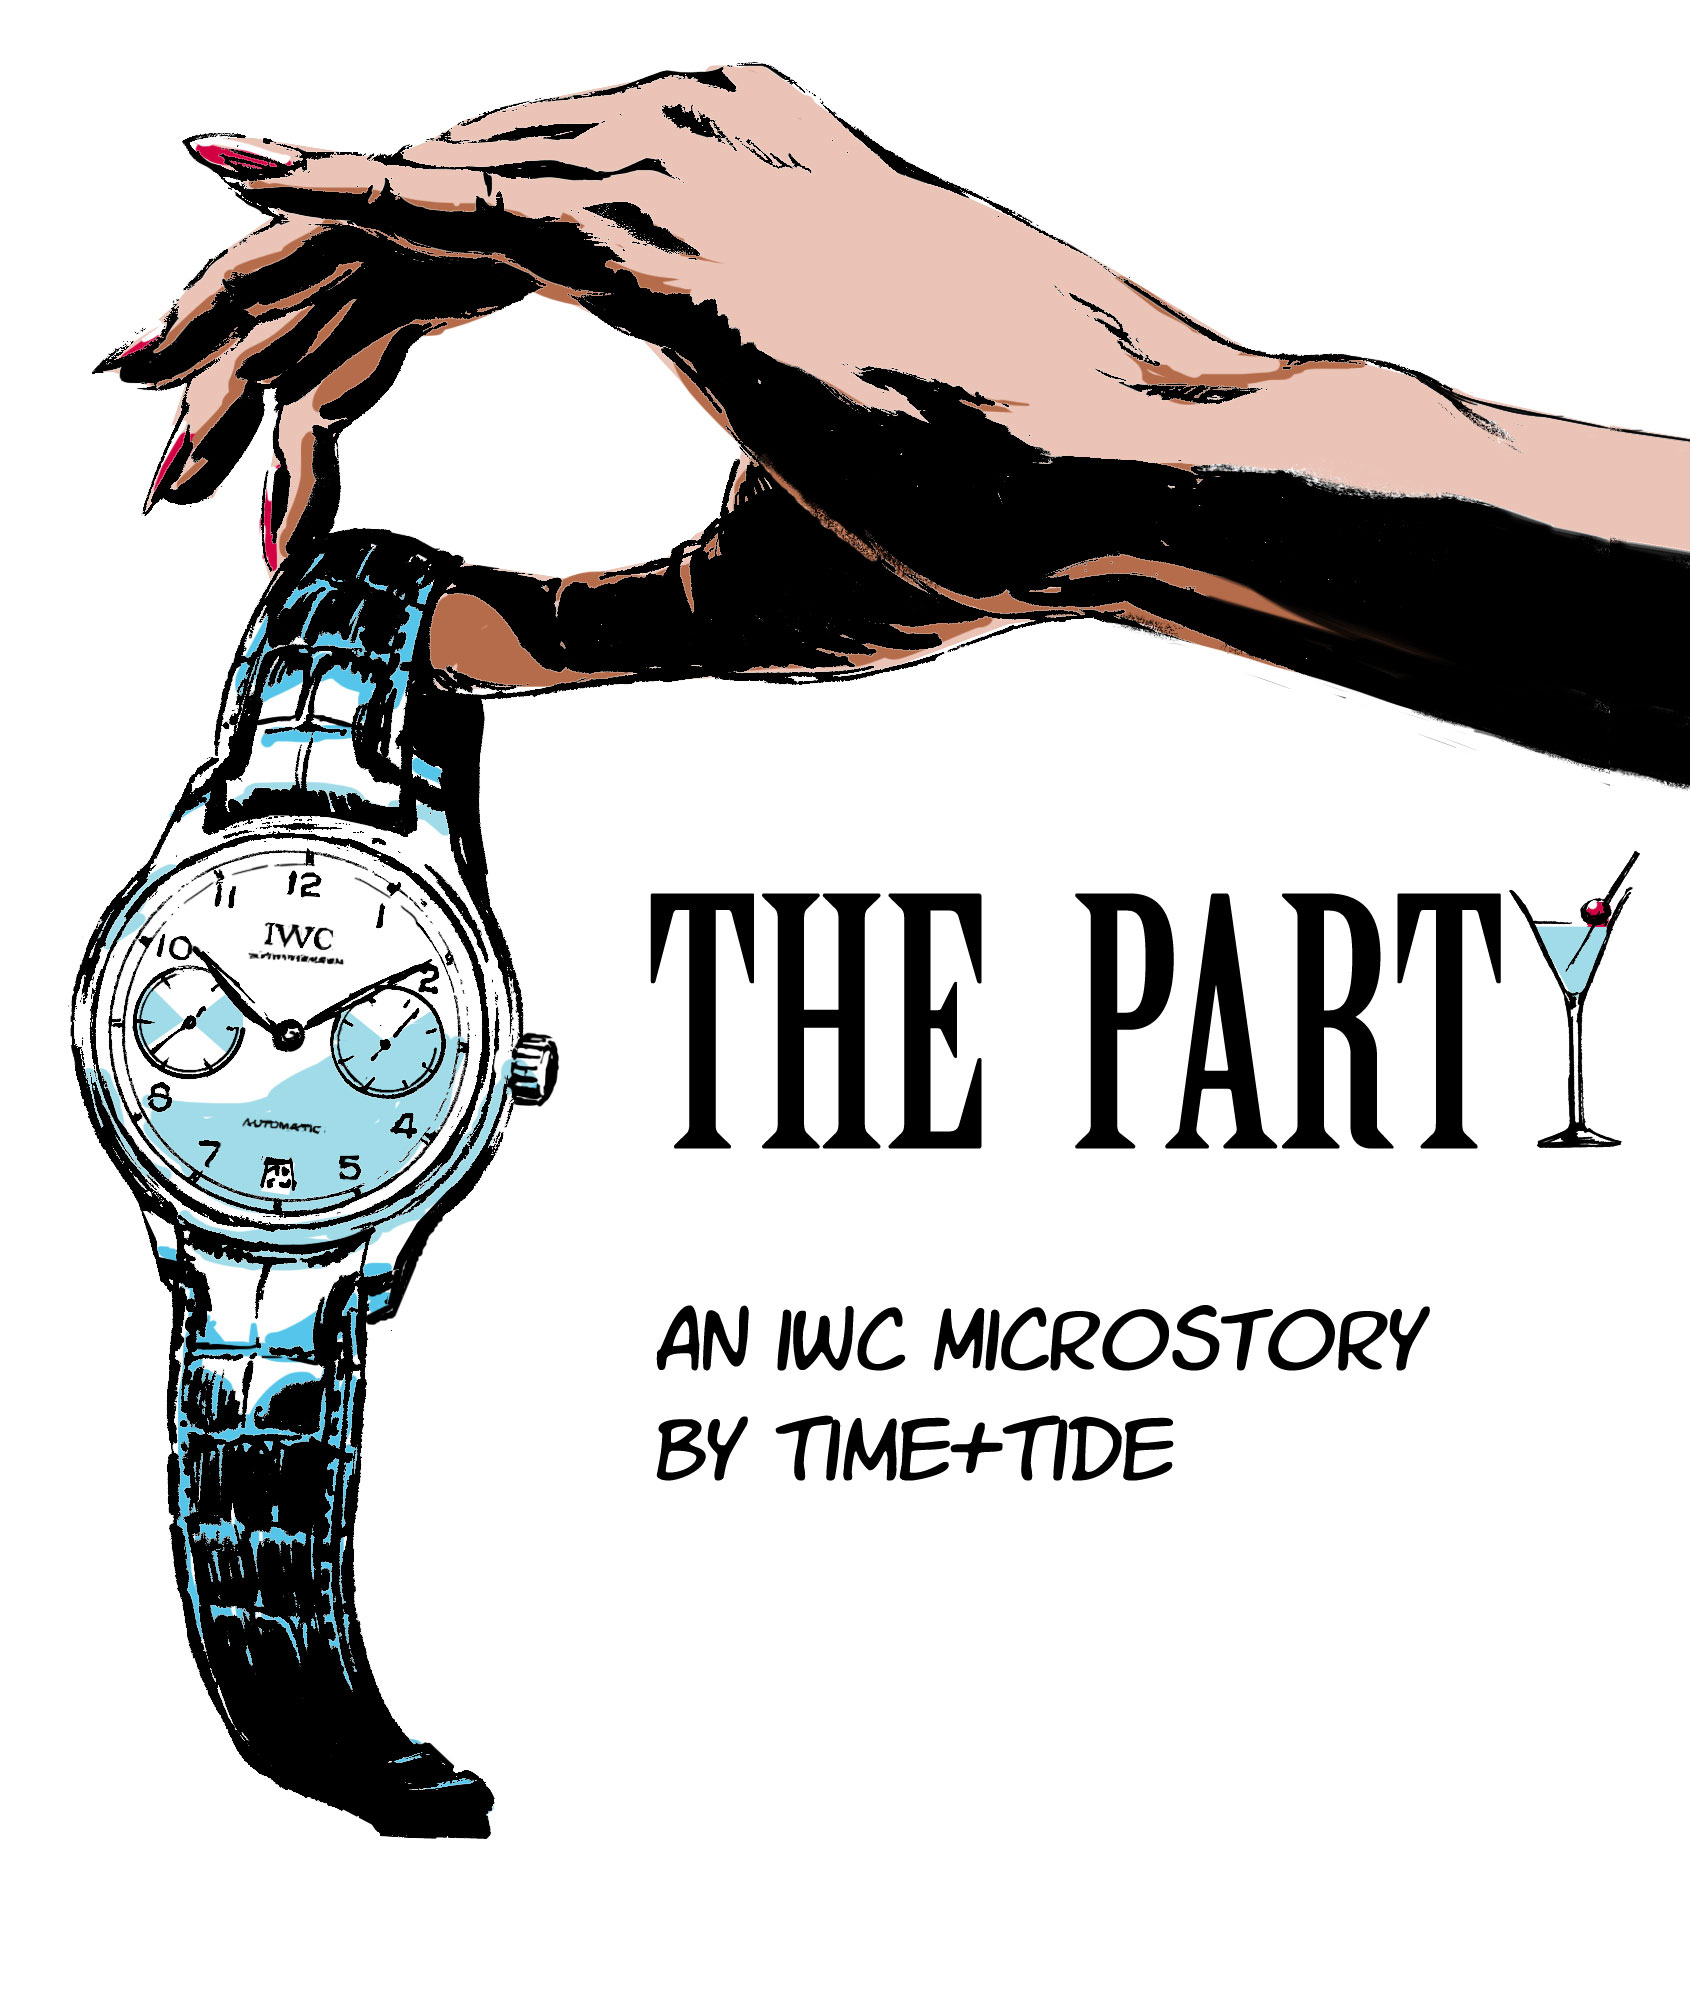 iwc-the-party-morning-cover